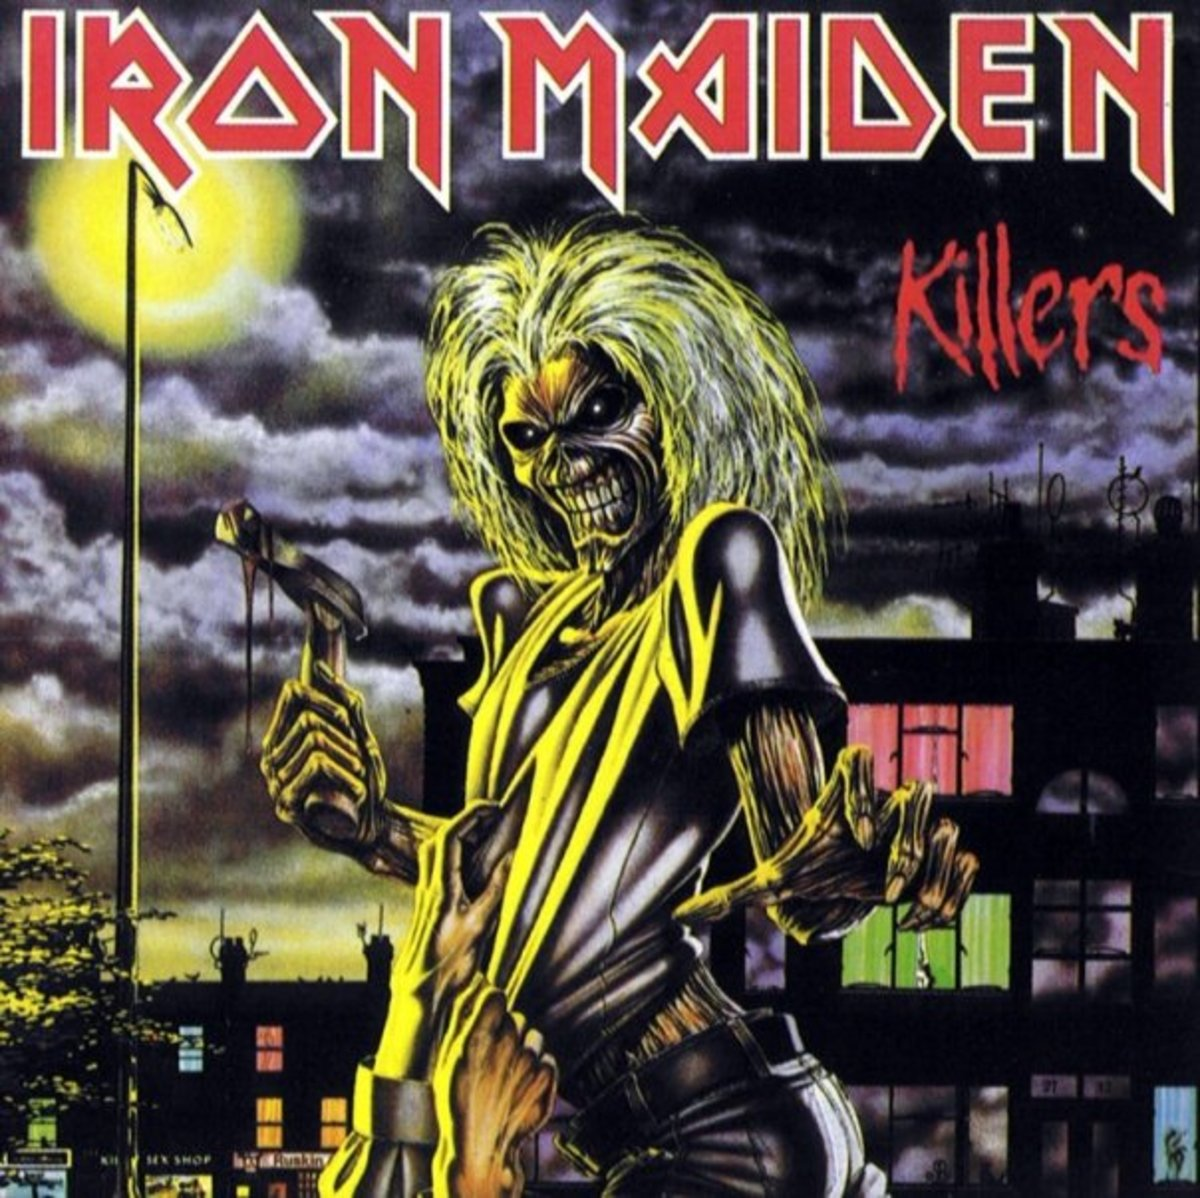 """Eddie"" first appears on Iron Maiden's ""Killers"" album after a transformation (see last slide)"